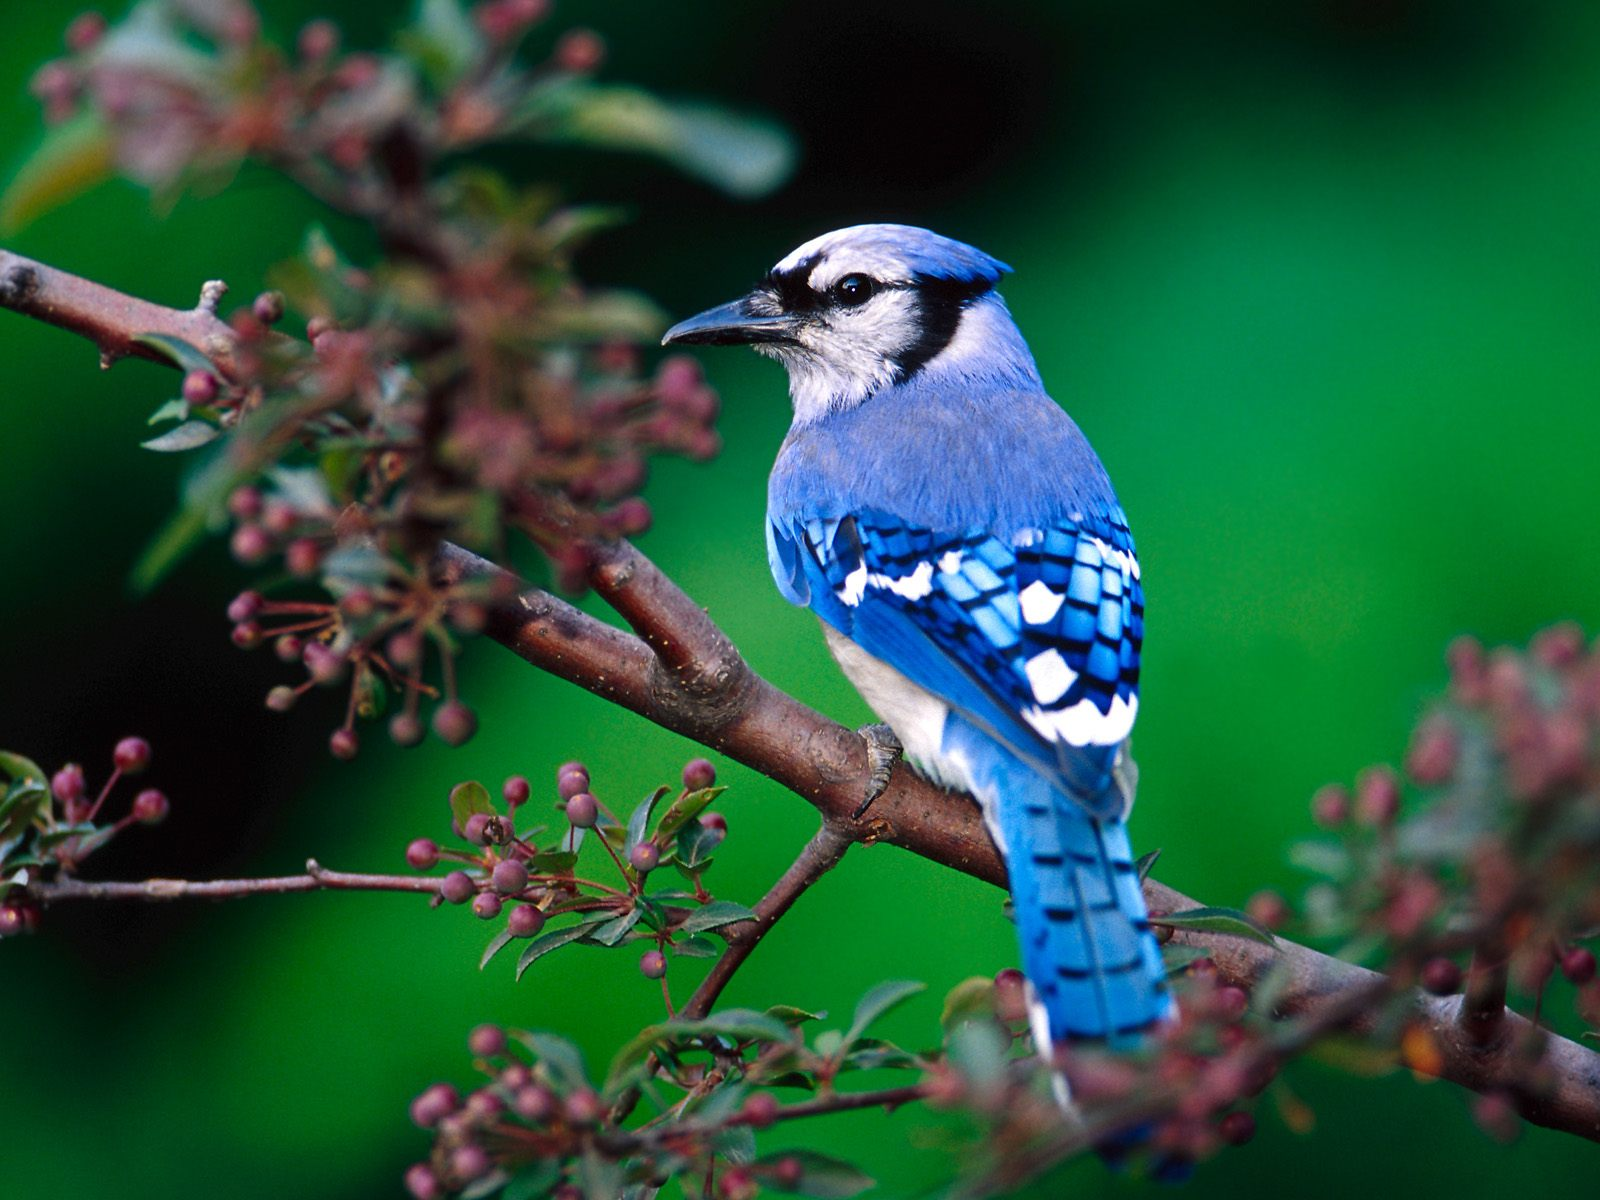 High-resolution pictures of birds 864